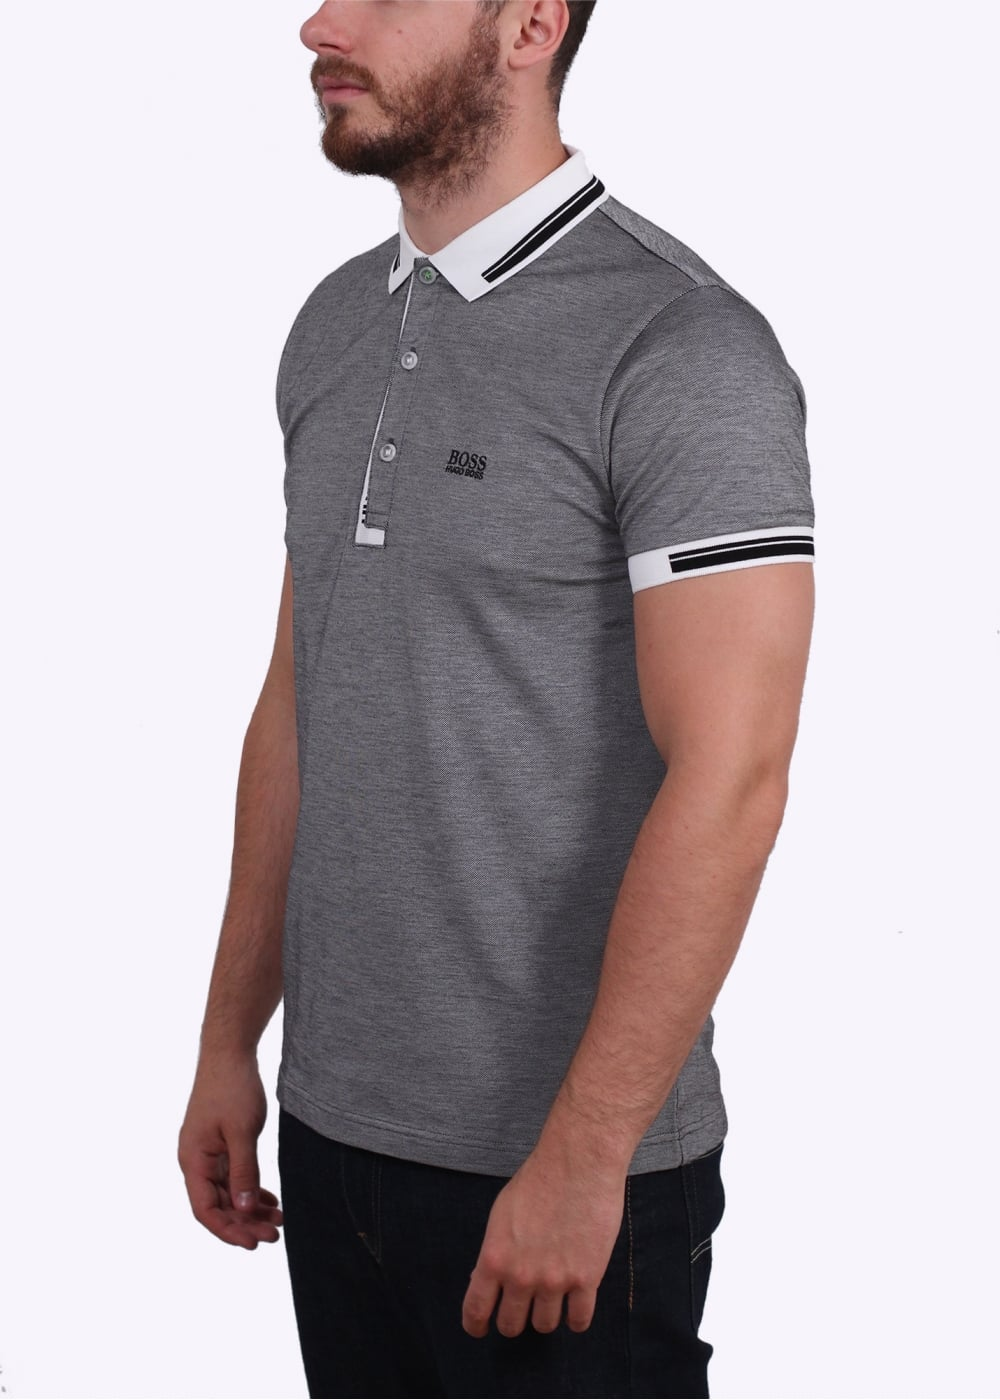 Hugo boss green paule 4 polo shirt natural hugo boss for Hugo boss green polo shirt sale